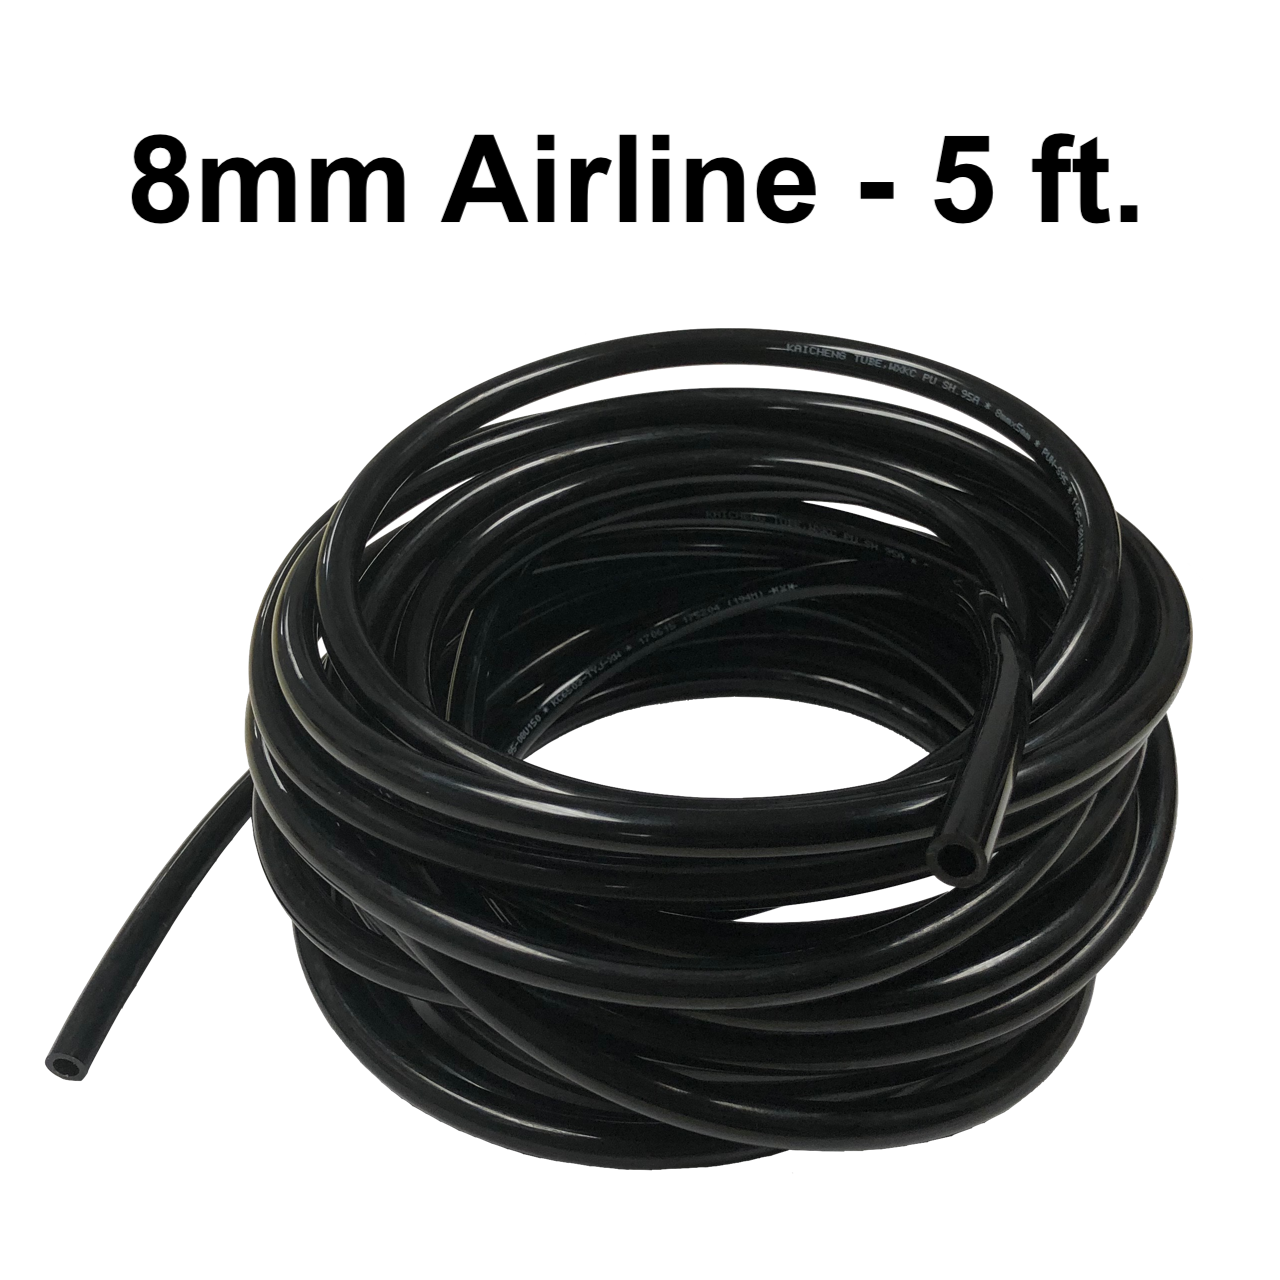 W-5509033 8mm Airline - 5 ft.